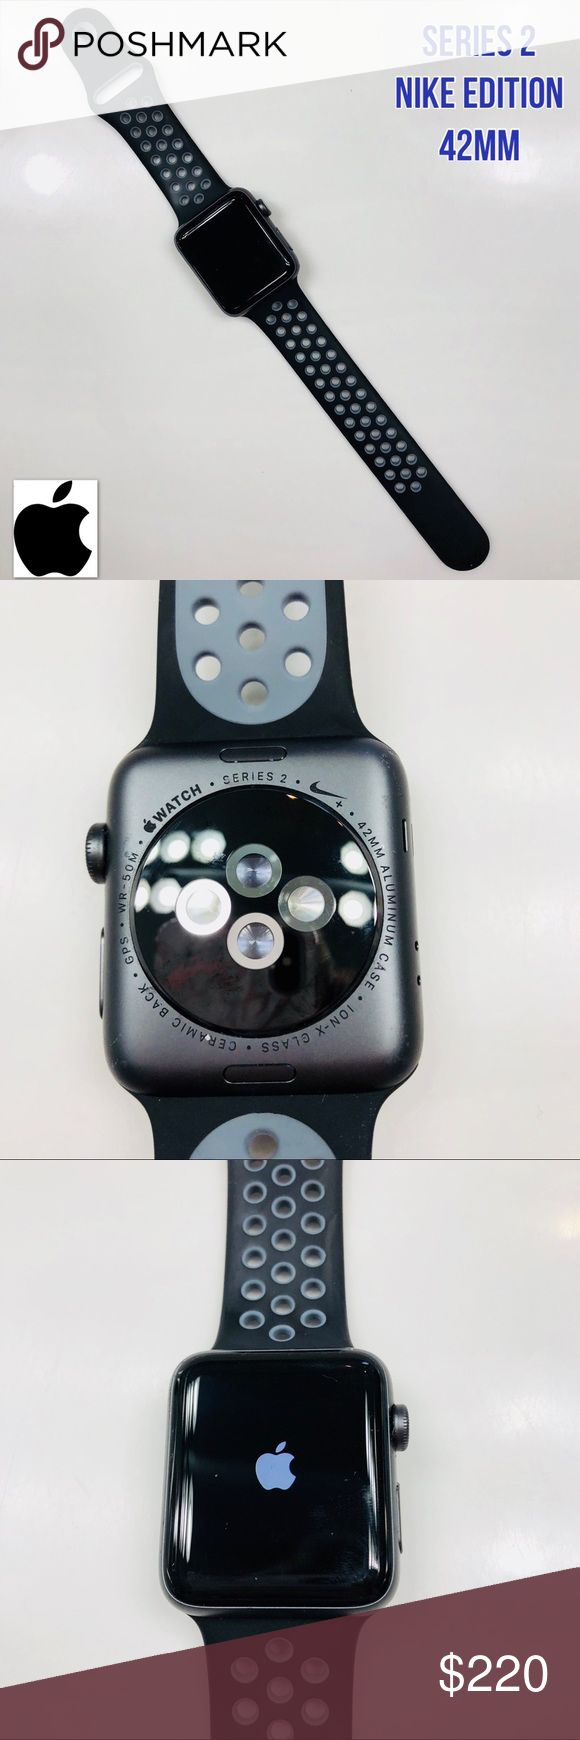 Apple Watch Series 2 42mm Nike Edition like New! Apple Watch Series 2 42 mm Nike Edition  No Trades   Like all Apple Watch Series 2 models, Apple Watch Nike+ has built-in GPS to track your pace, distance, and route — even if you don't have your iPhone with you. With the brightest display Apple has ever made, your metrics are easy to read, no matter how much the sun glares. And Apple Watch Nike+ is rated water resistant 50 meters,* so you can even take a post-run dip in the pool.   Great…